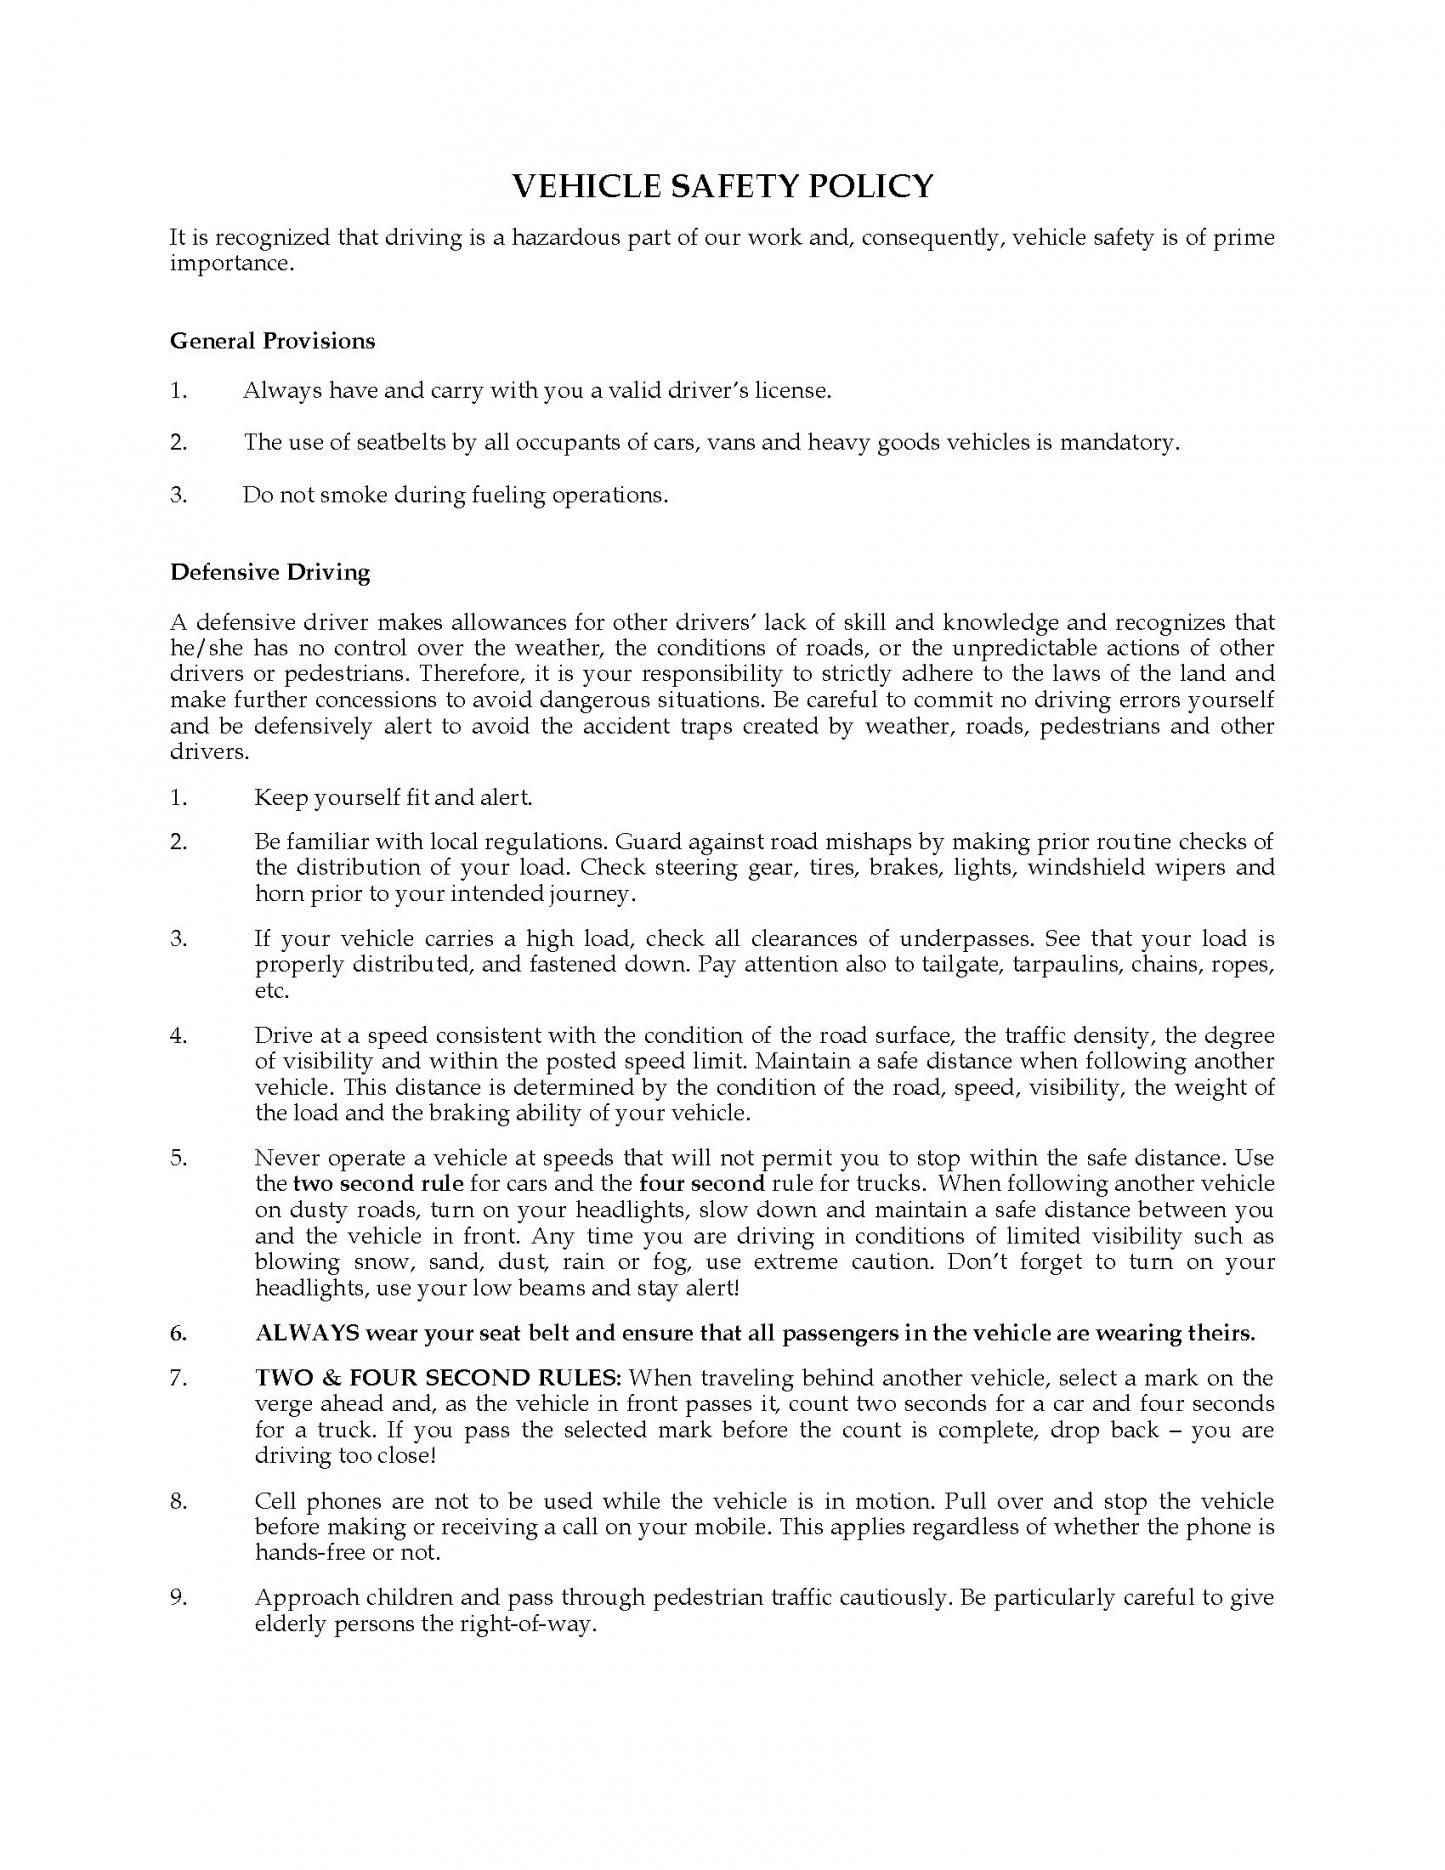 Professional Company Vehicle Policy Template Example In 2021 Policy Template Startup Company Policies Trucking company safety policy template